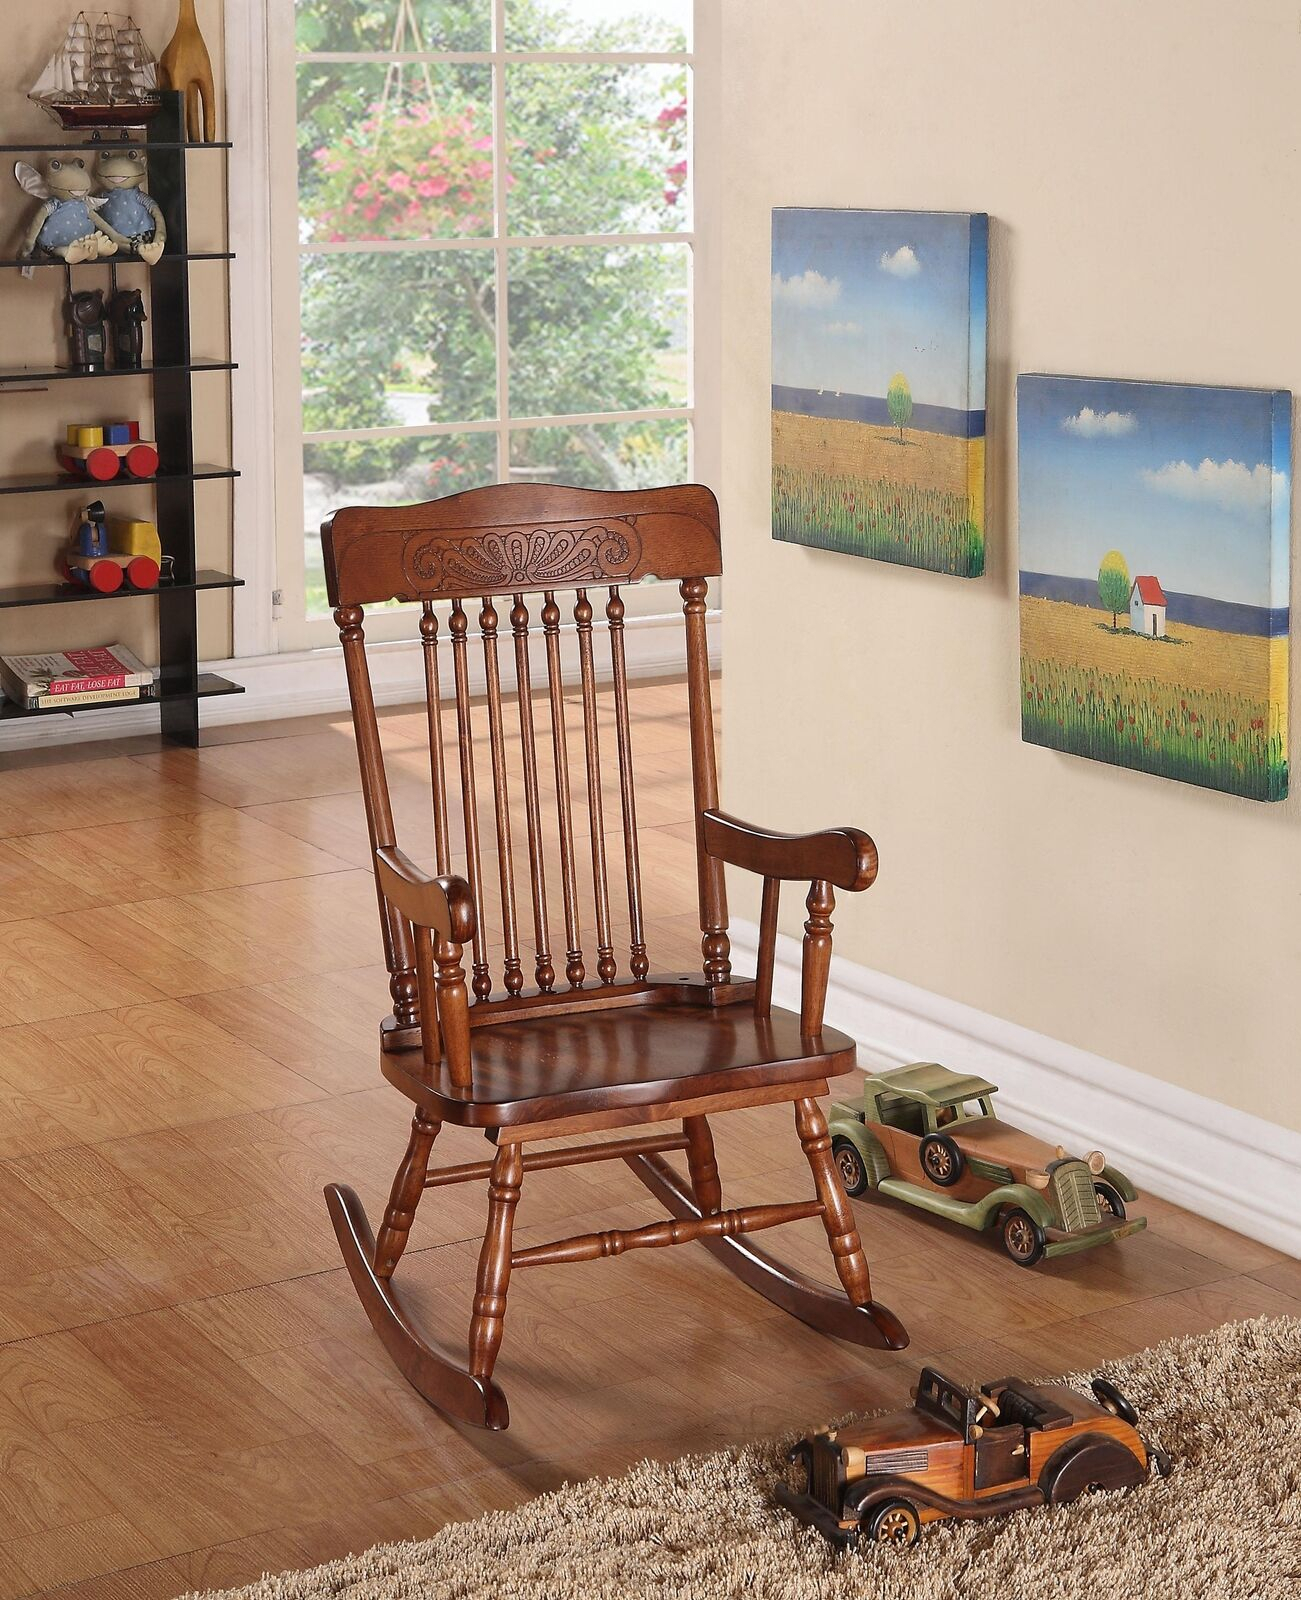 Details About Acme Kloris Youth Rocking Chair, Tobacco Youth/traditional'  Tobacco Intended For Brown Wood Youth Rocking Chairs (#10 of 20)